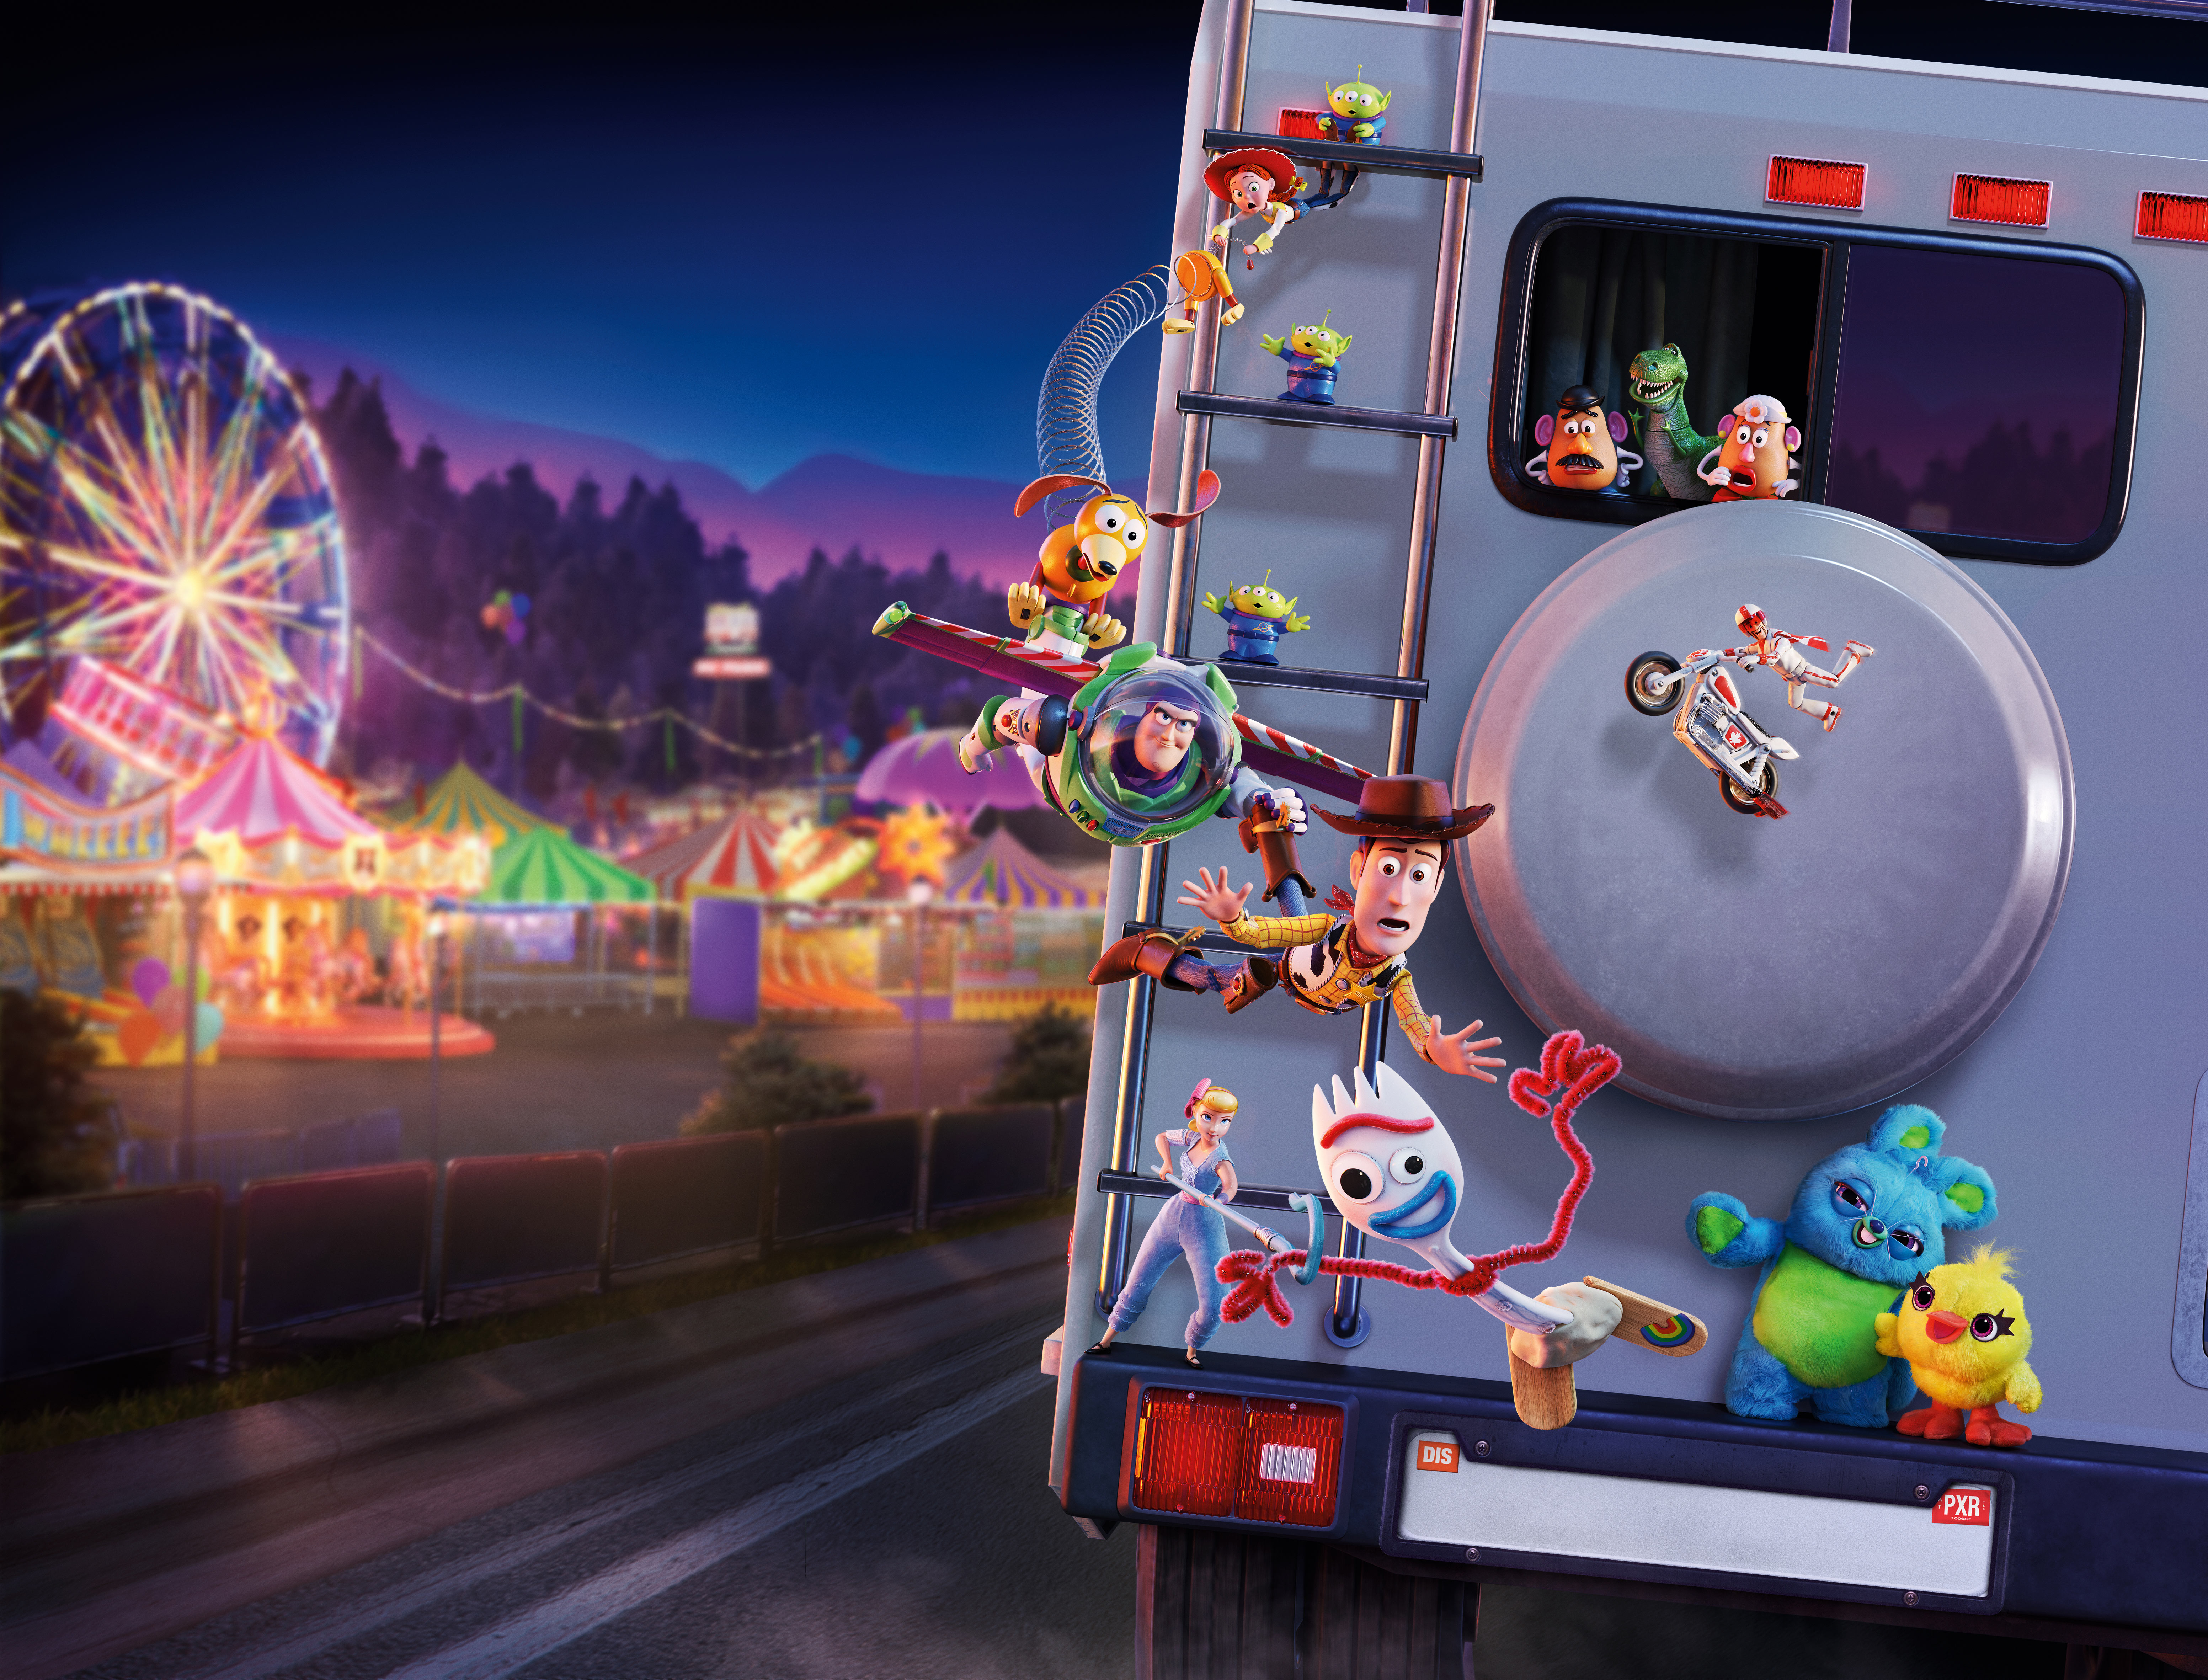 New Toy Story 4 Poster Wallpaper, HD Movies 4K Wallpapers ...